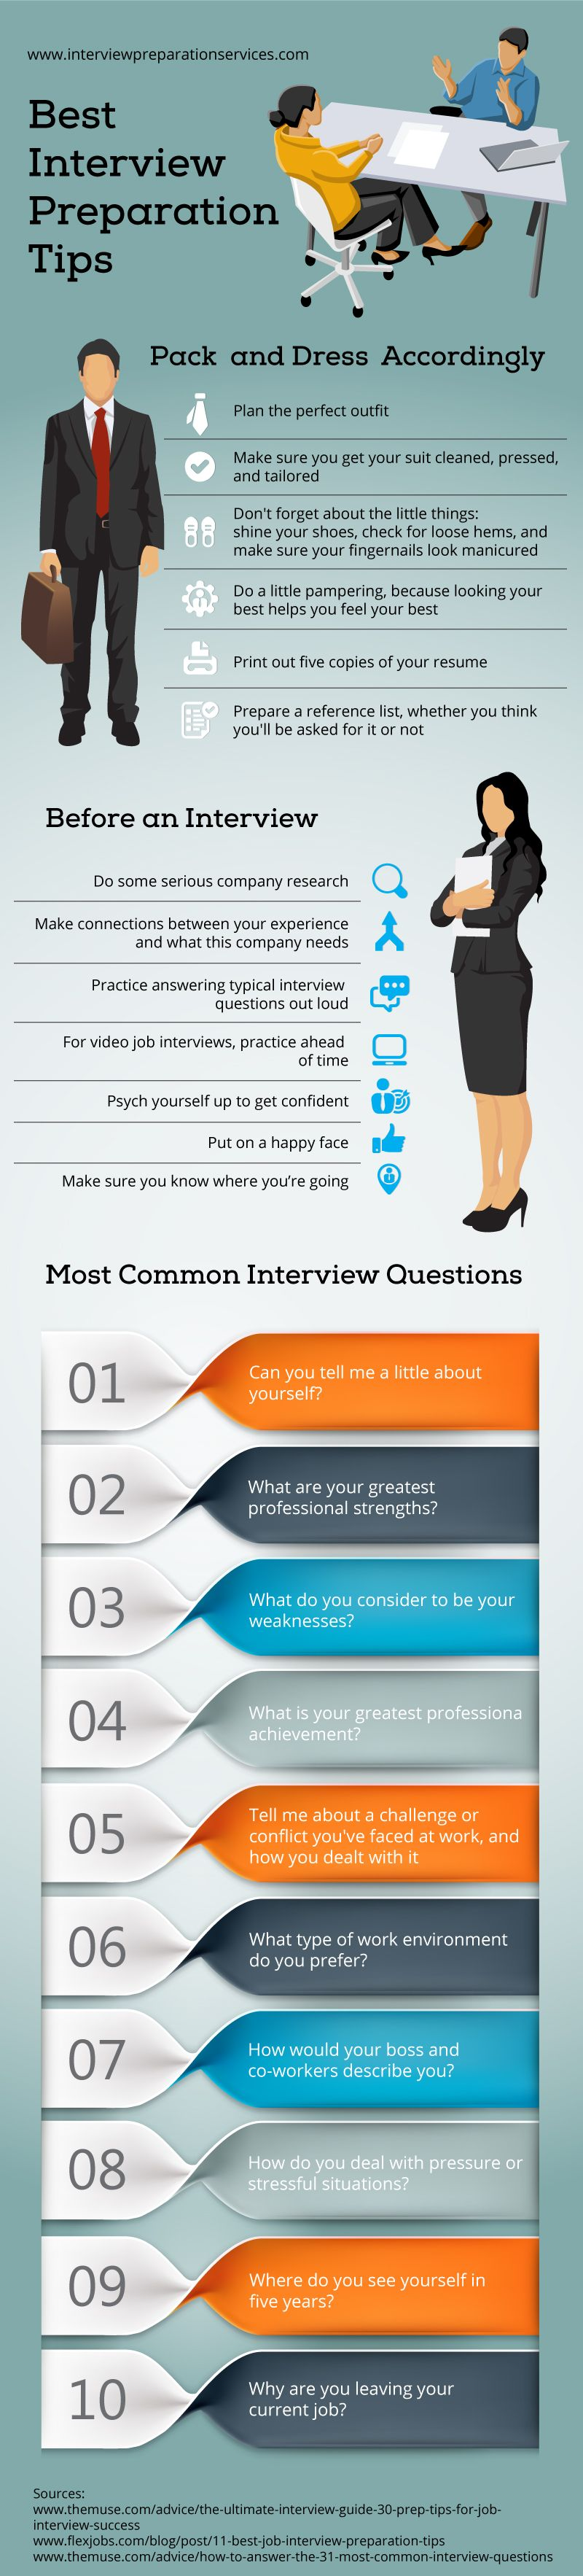 all in one place the best job interview preparation tips infographic the - The Best Job Interview Tips You Can Get